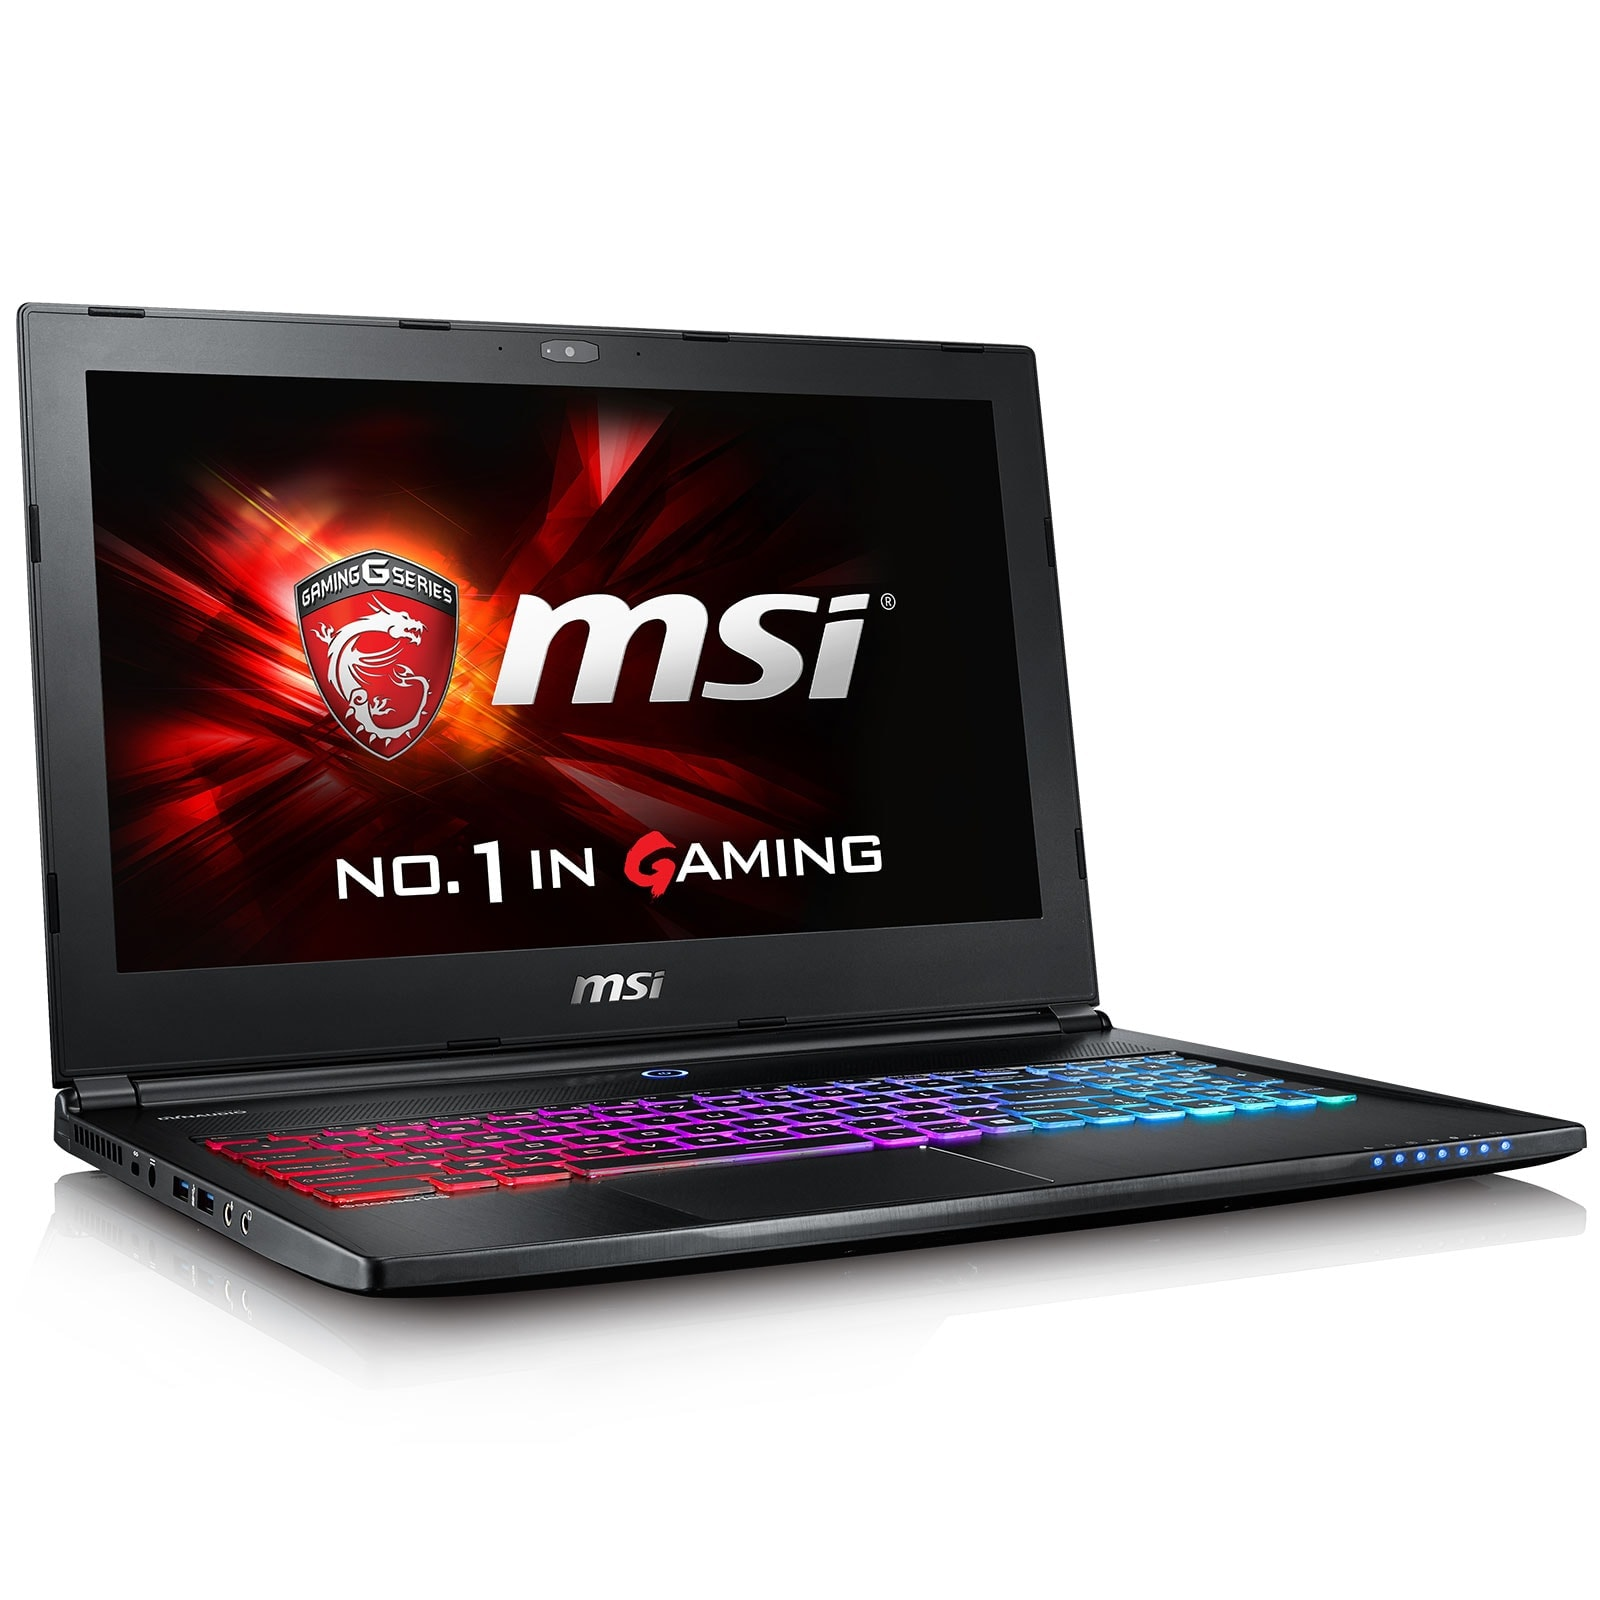 MSI GS606QE-219XFR - PC portable MSI - Cybertek.fr - 0